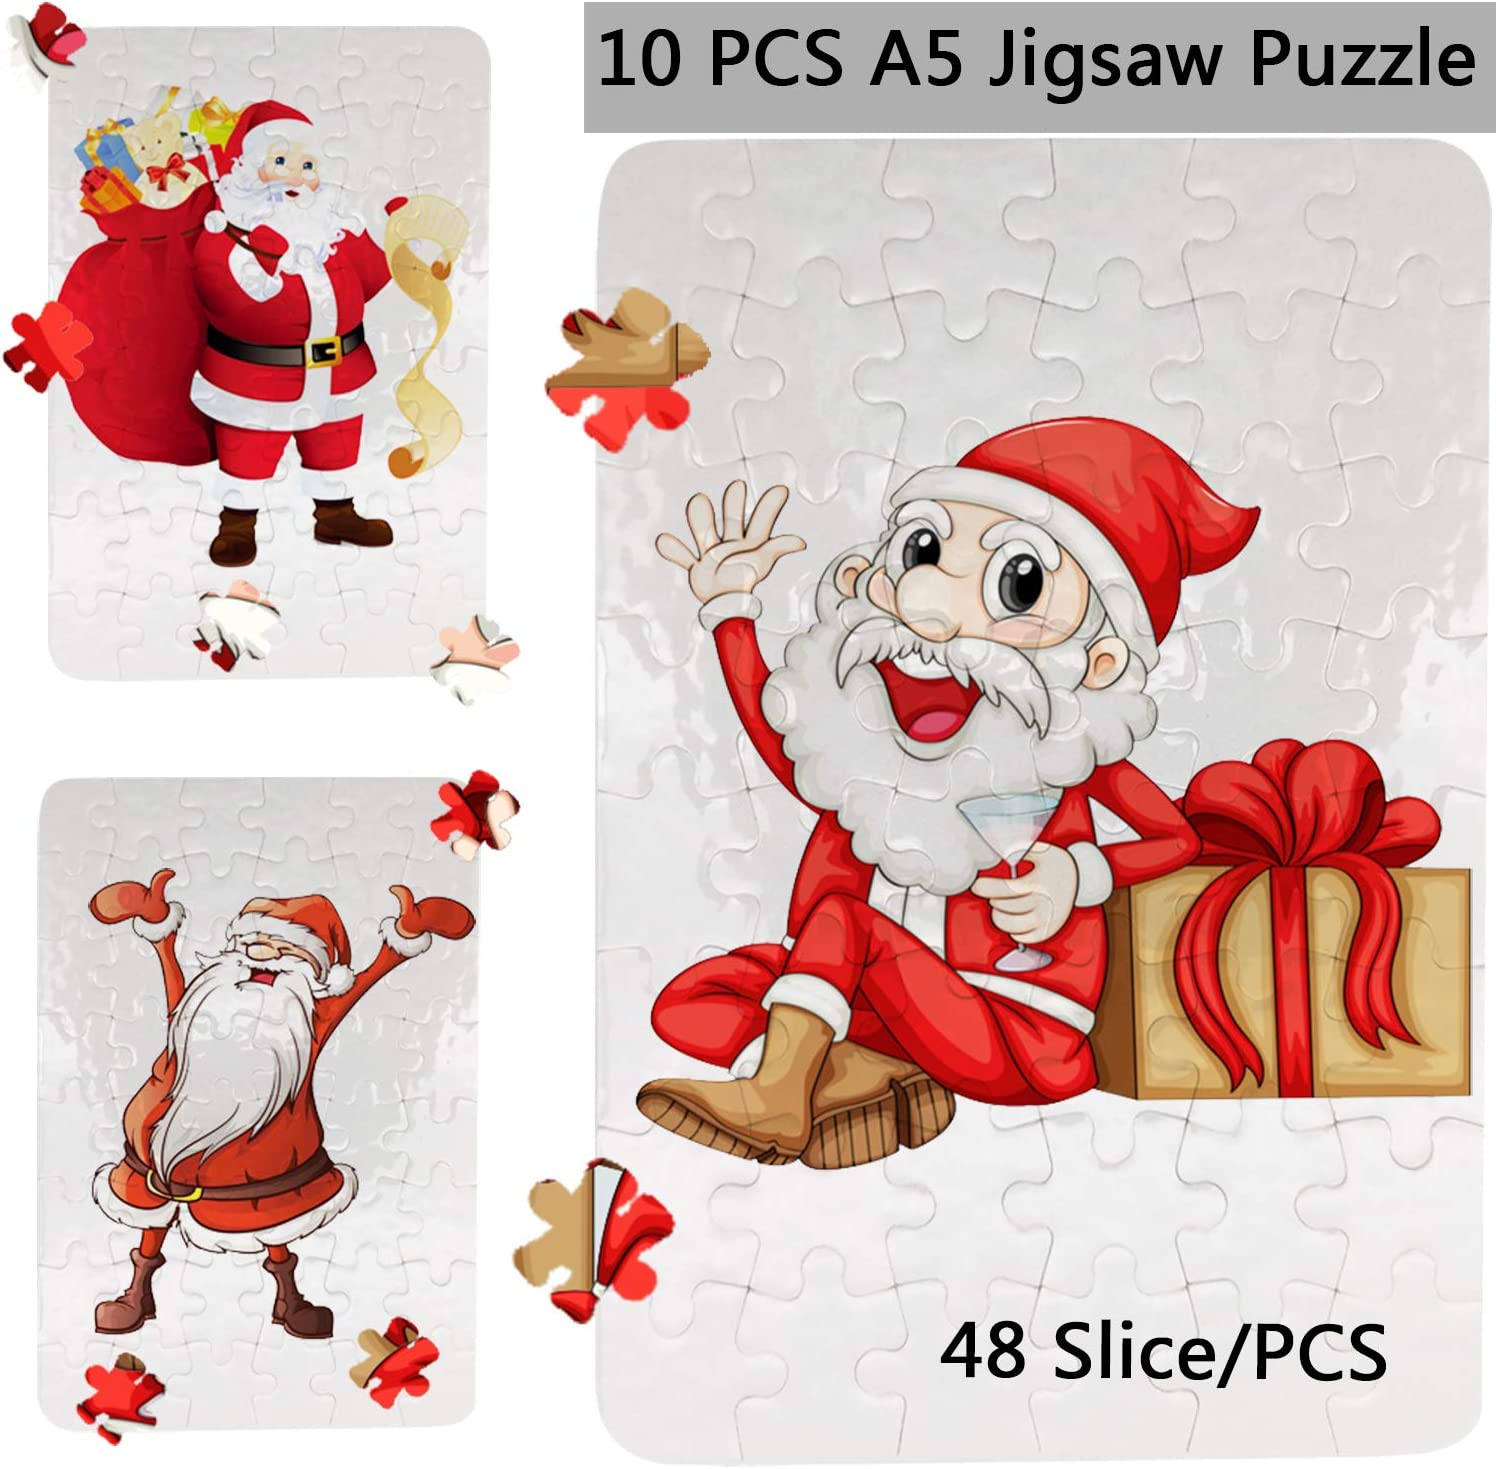 10 Sets Blank Sublimation A5 Jigsaw Puzzle with 48 Pieces DIY Heat Press Transfer Crafts A5 Thermal Transfer Puzzle Wholesale DIY Thermal Transfer Pearl Puzzle Blank Puzzle Thermal Transfer Supplies